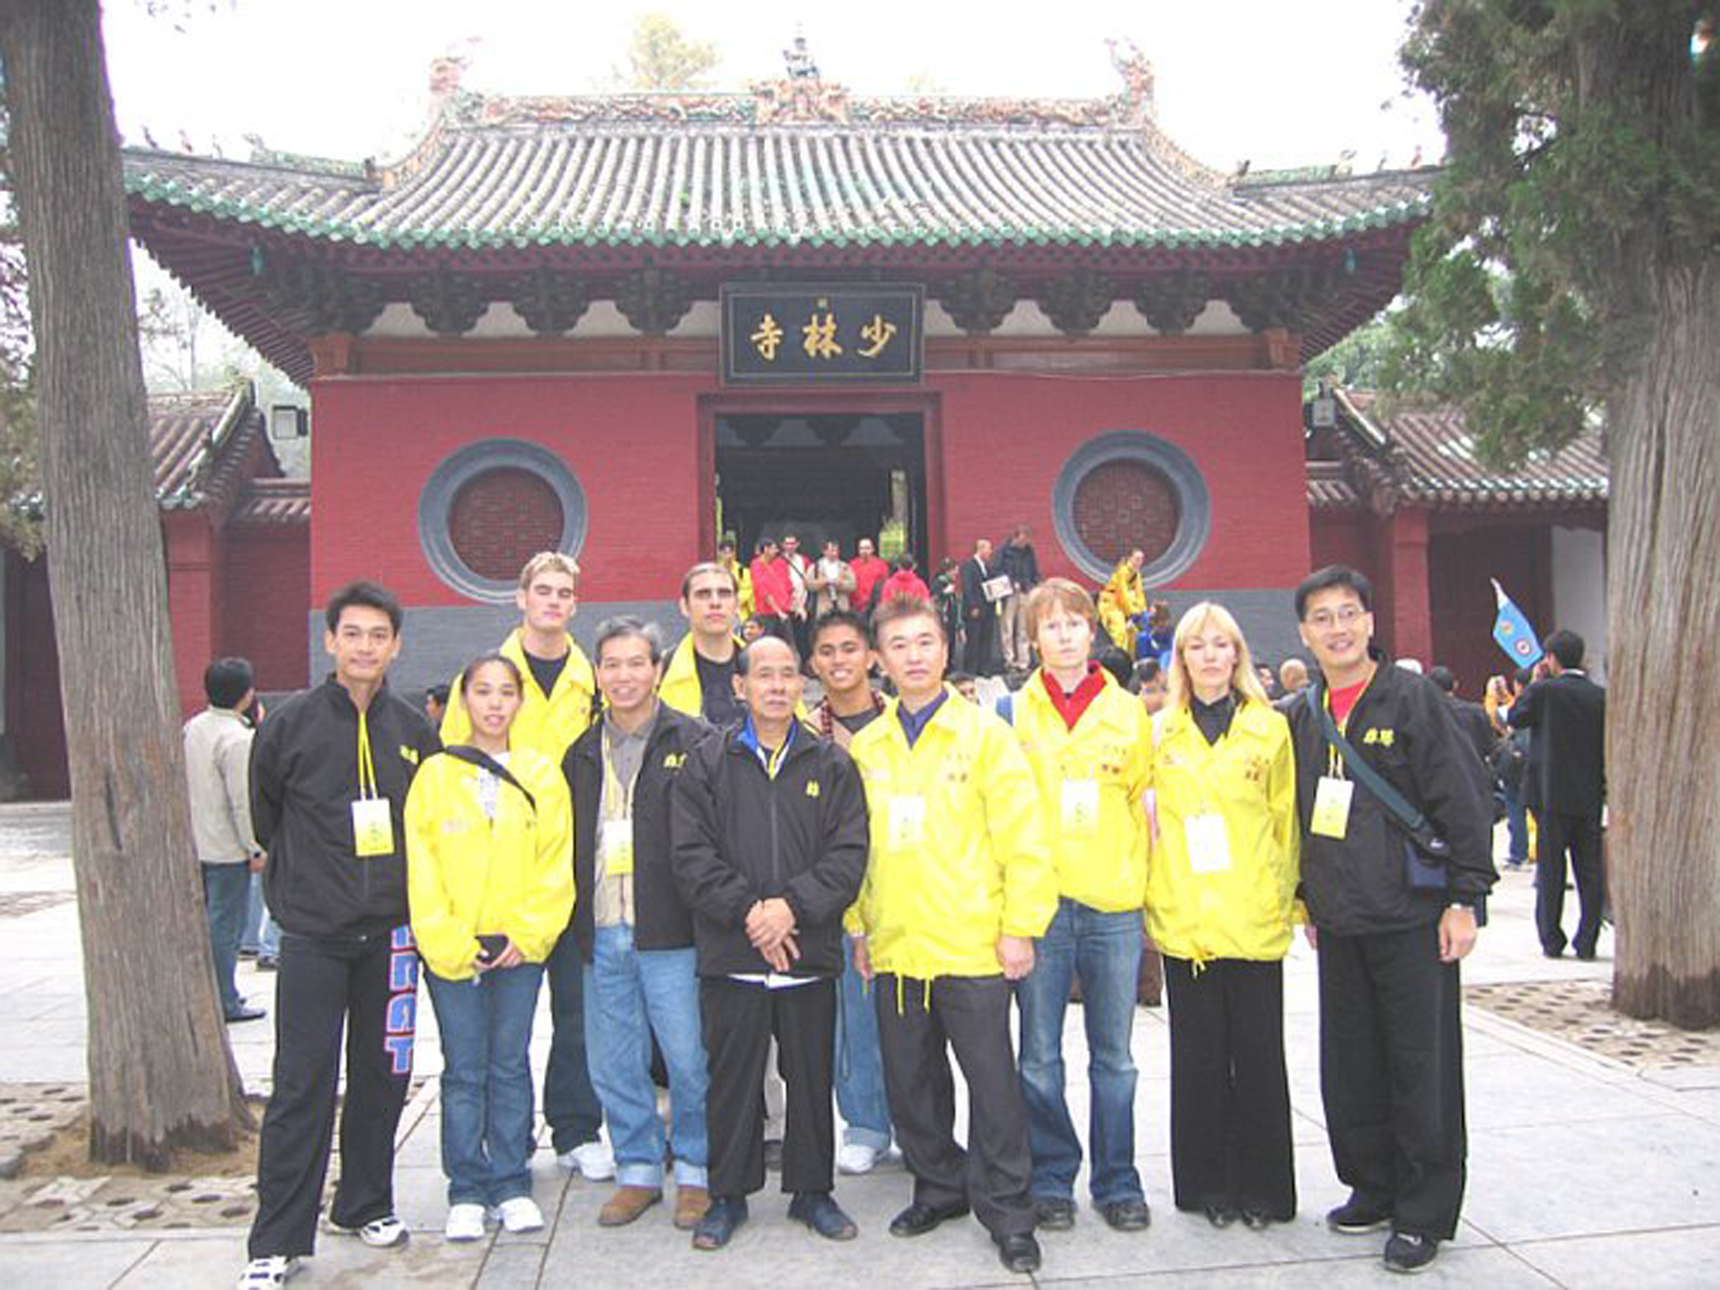 choy li fut kung fu at the shaolin temple doc fai wong niel willcott wong gong.jpg